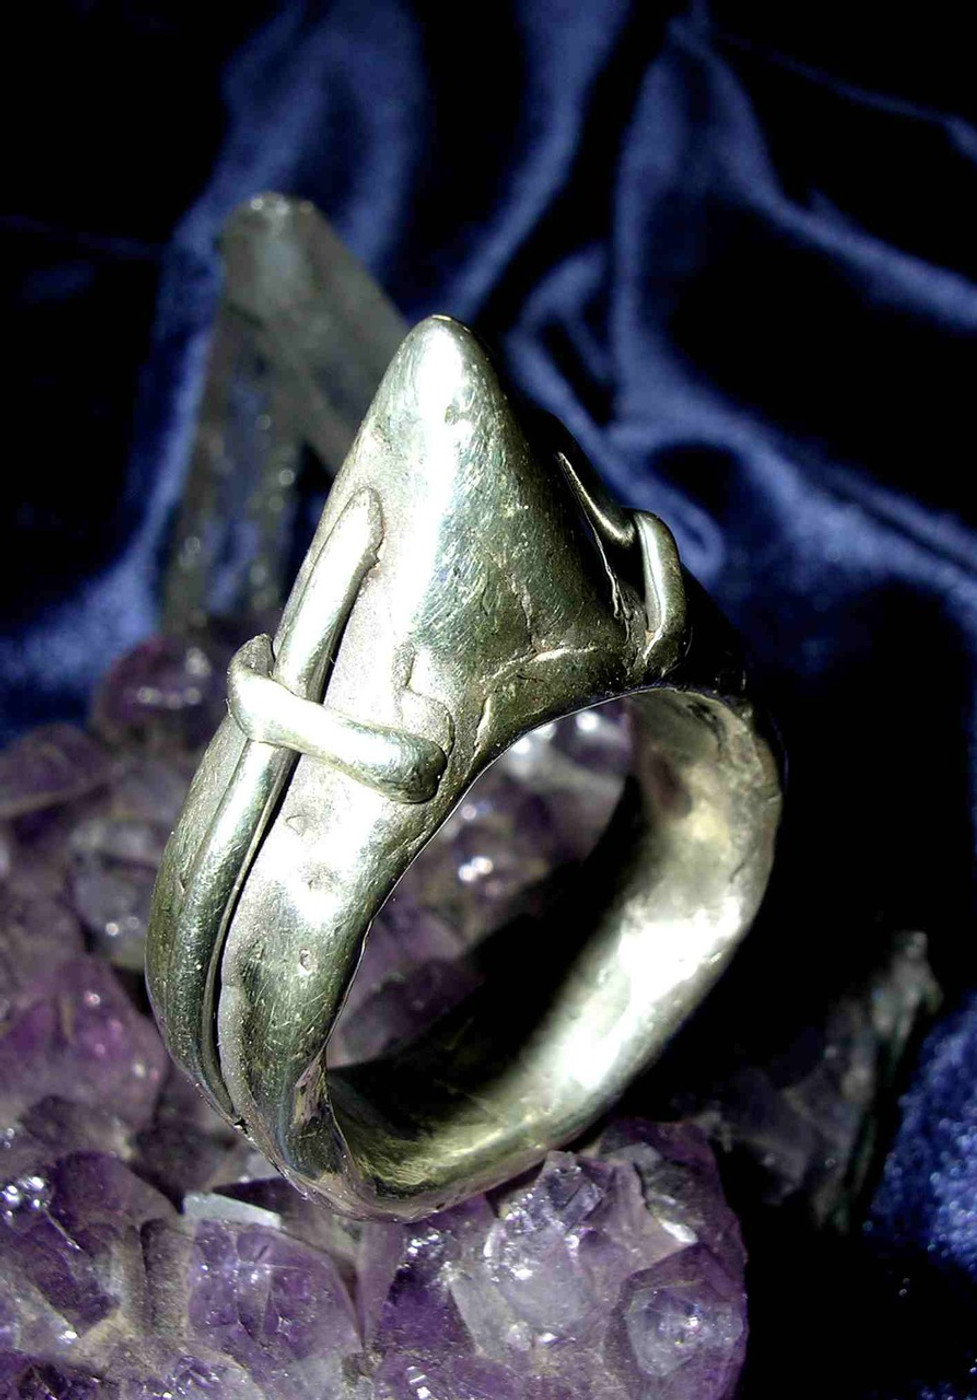 Merlin's Knights of The Round Table Magick Cross of Protection Ring!